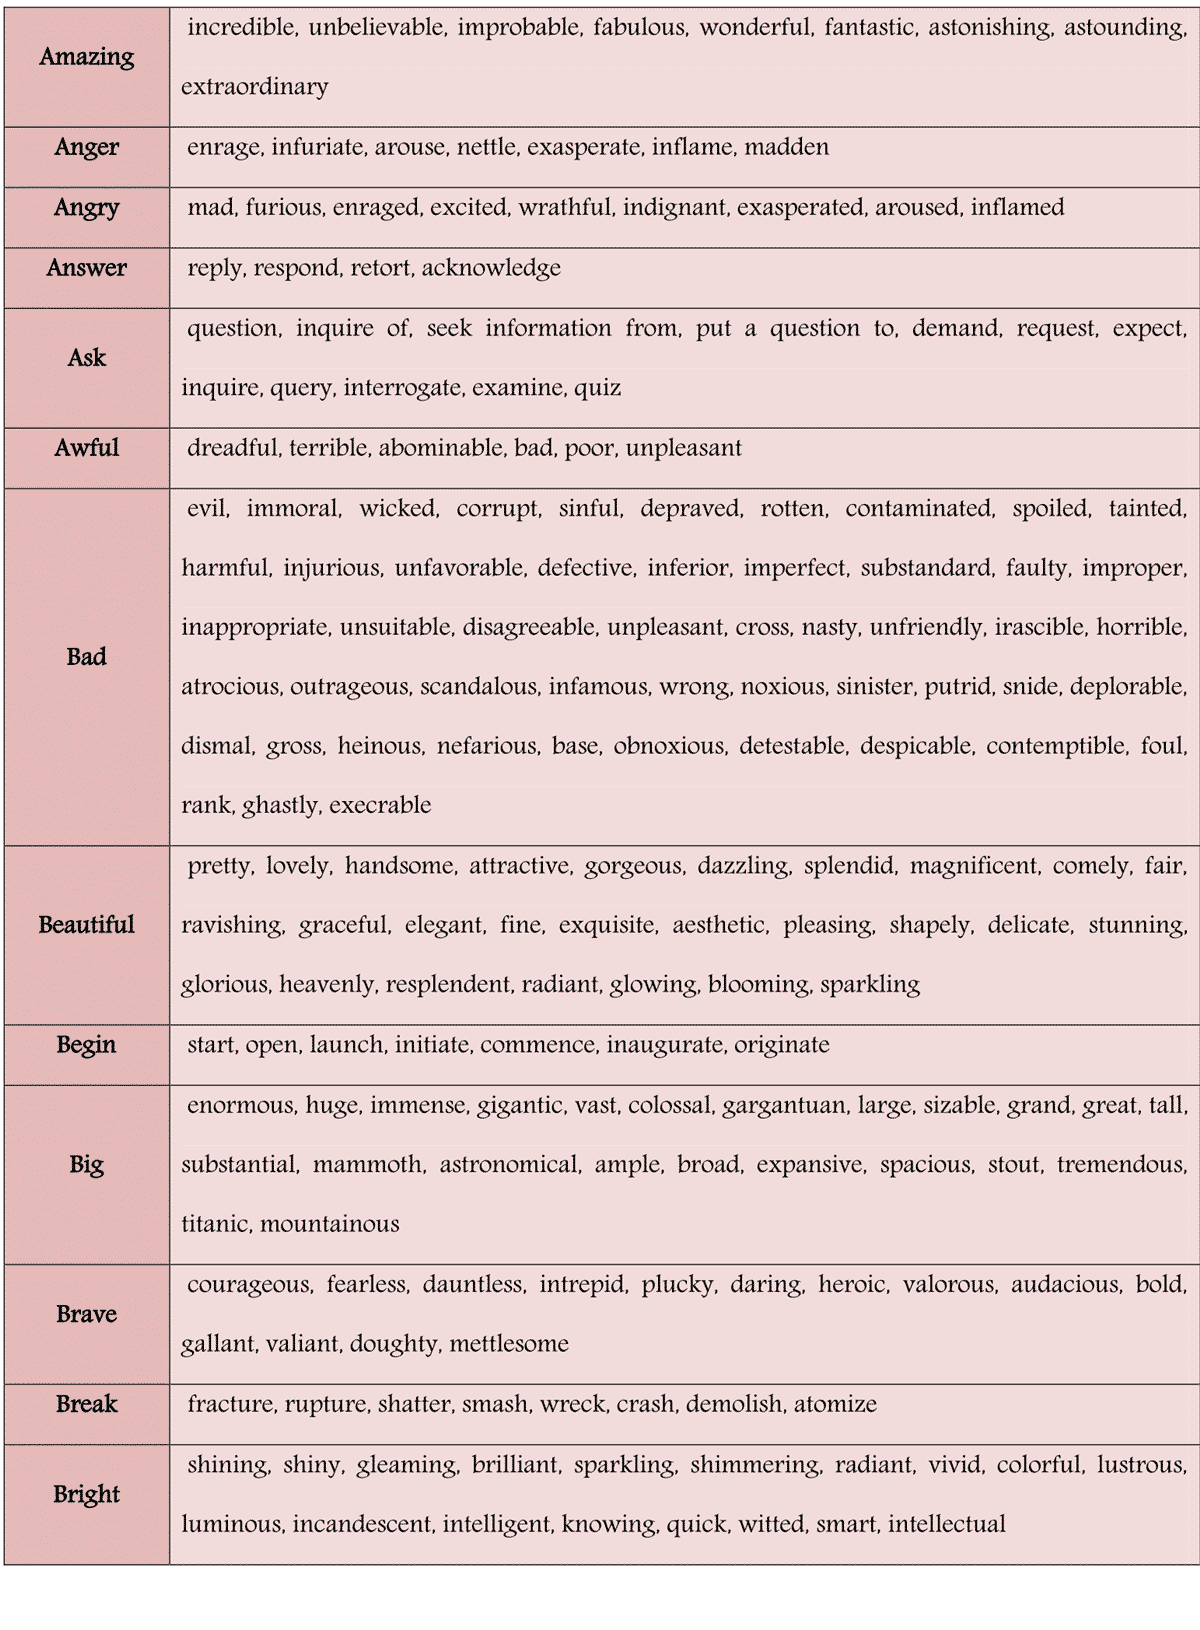 common synonyms list pdf